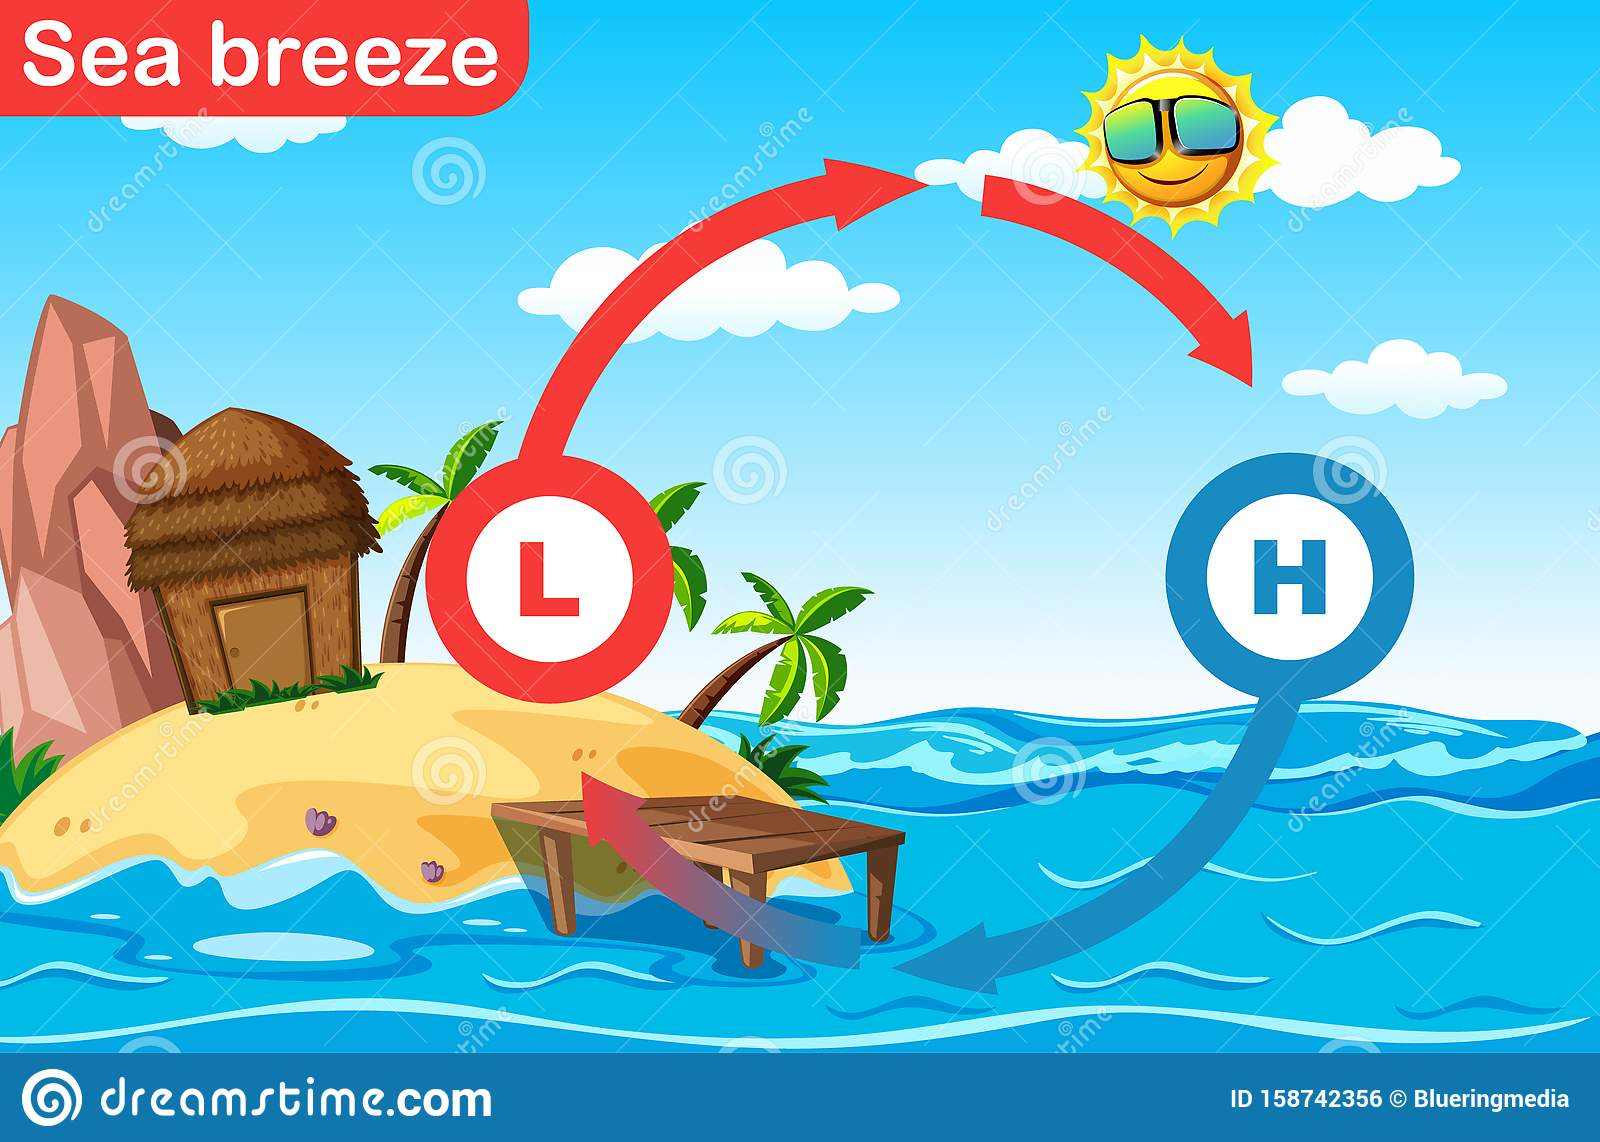 Science Poster Design For Sea Breeze Stock Vector